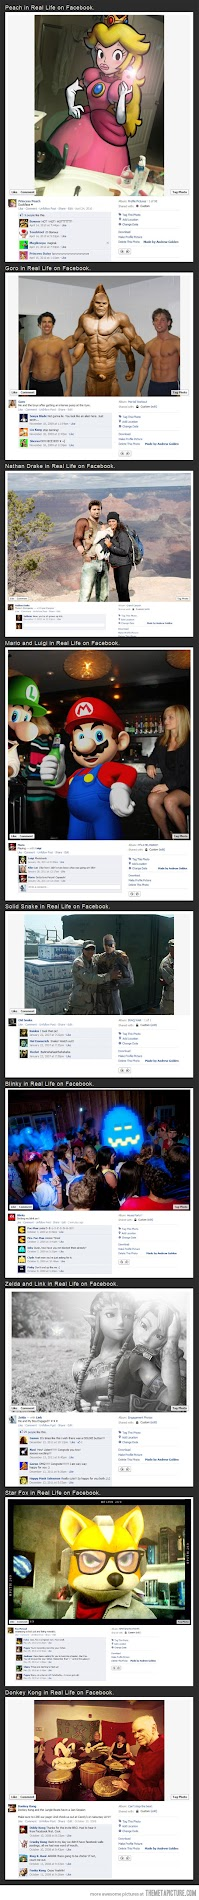 video game characters in real life on facebook